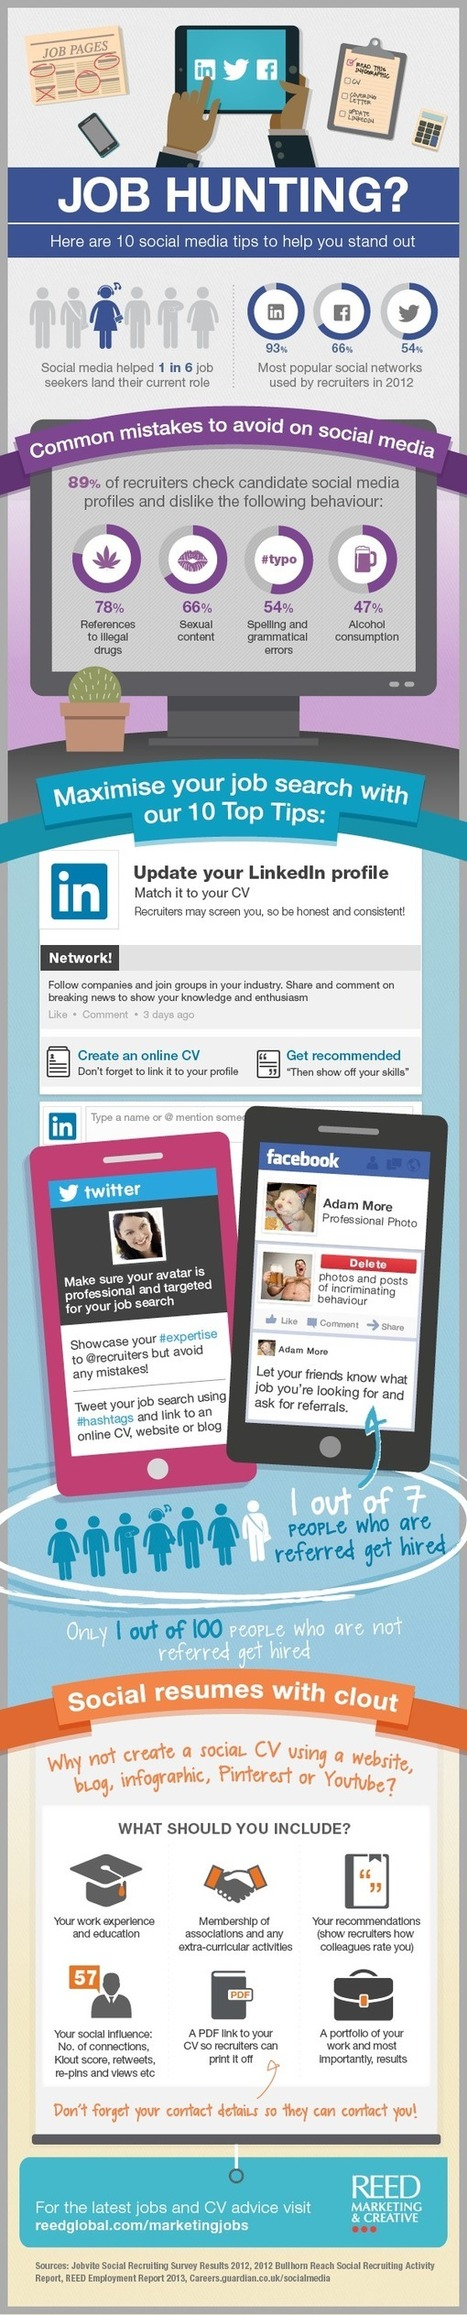 How to Find a Job Using Social Media - 10 Tips [INFOGRAPHIC] | Job Search Strategies | Scoop.it